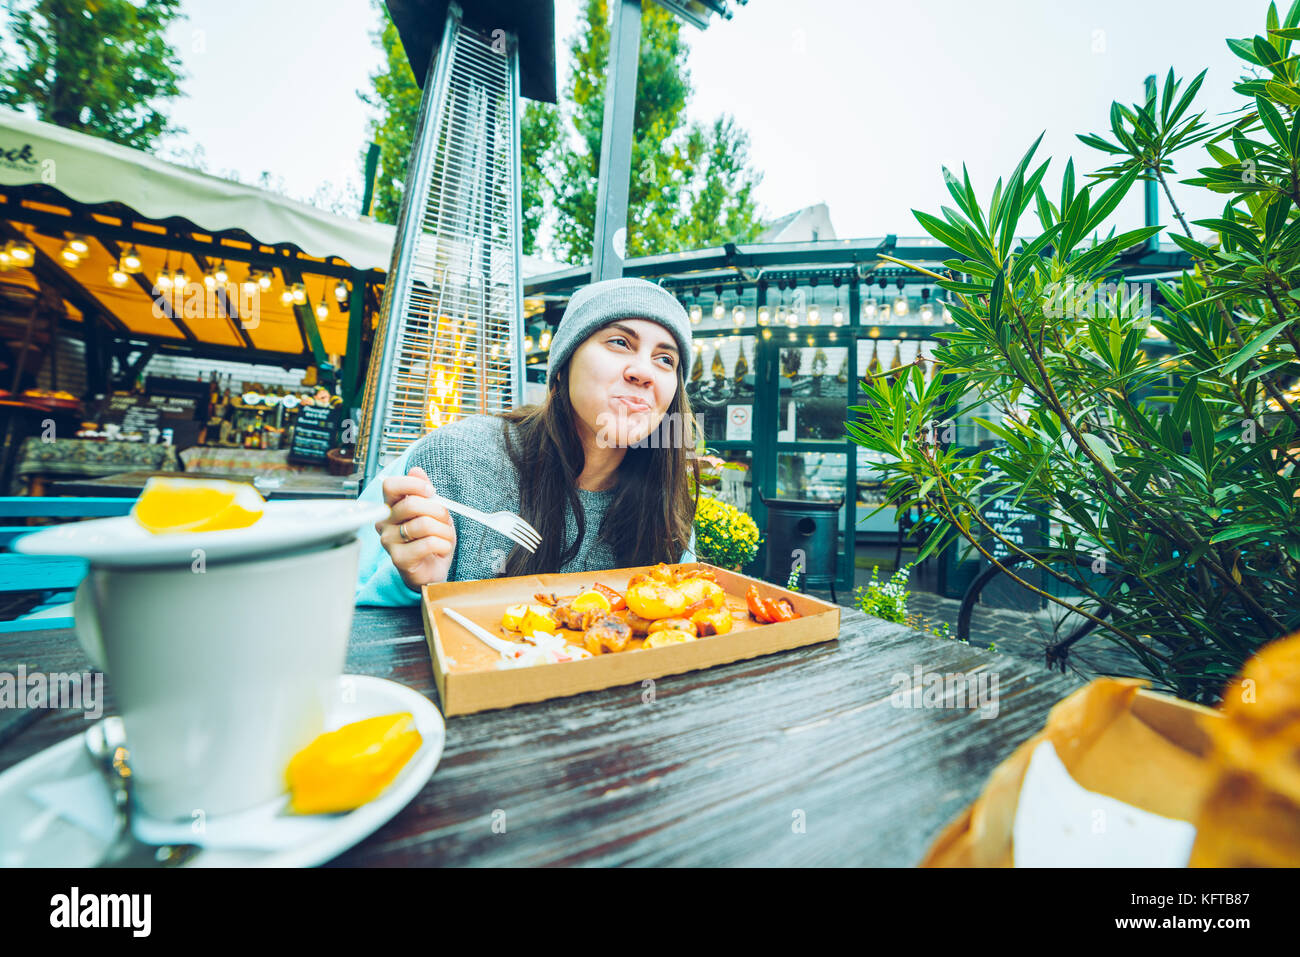 Beautiful woman eating in outside cafe - Stock Image